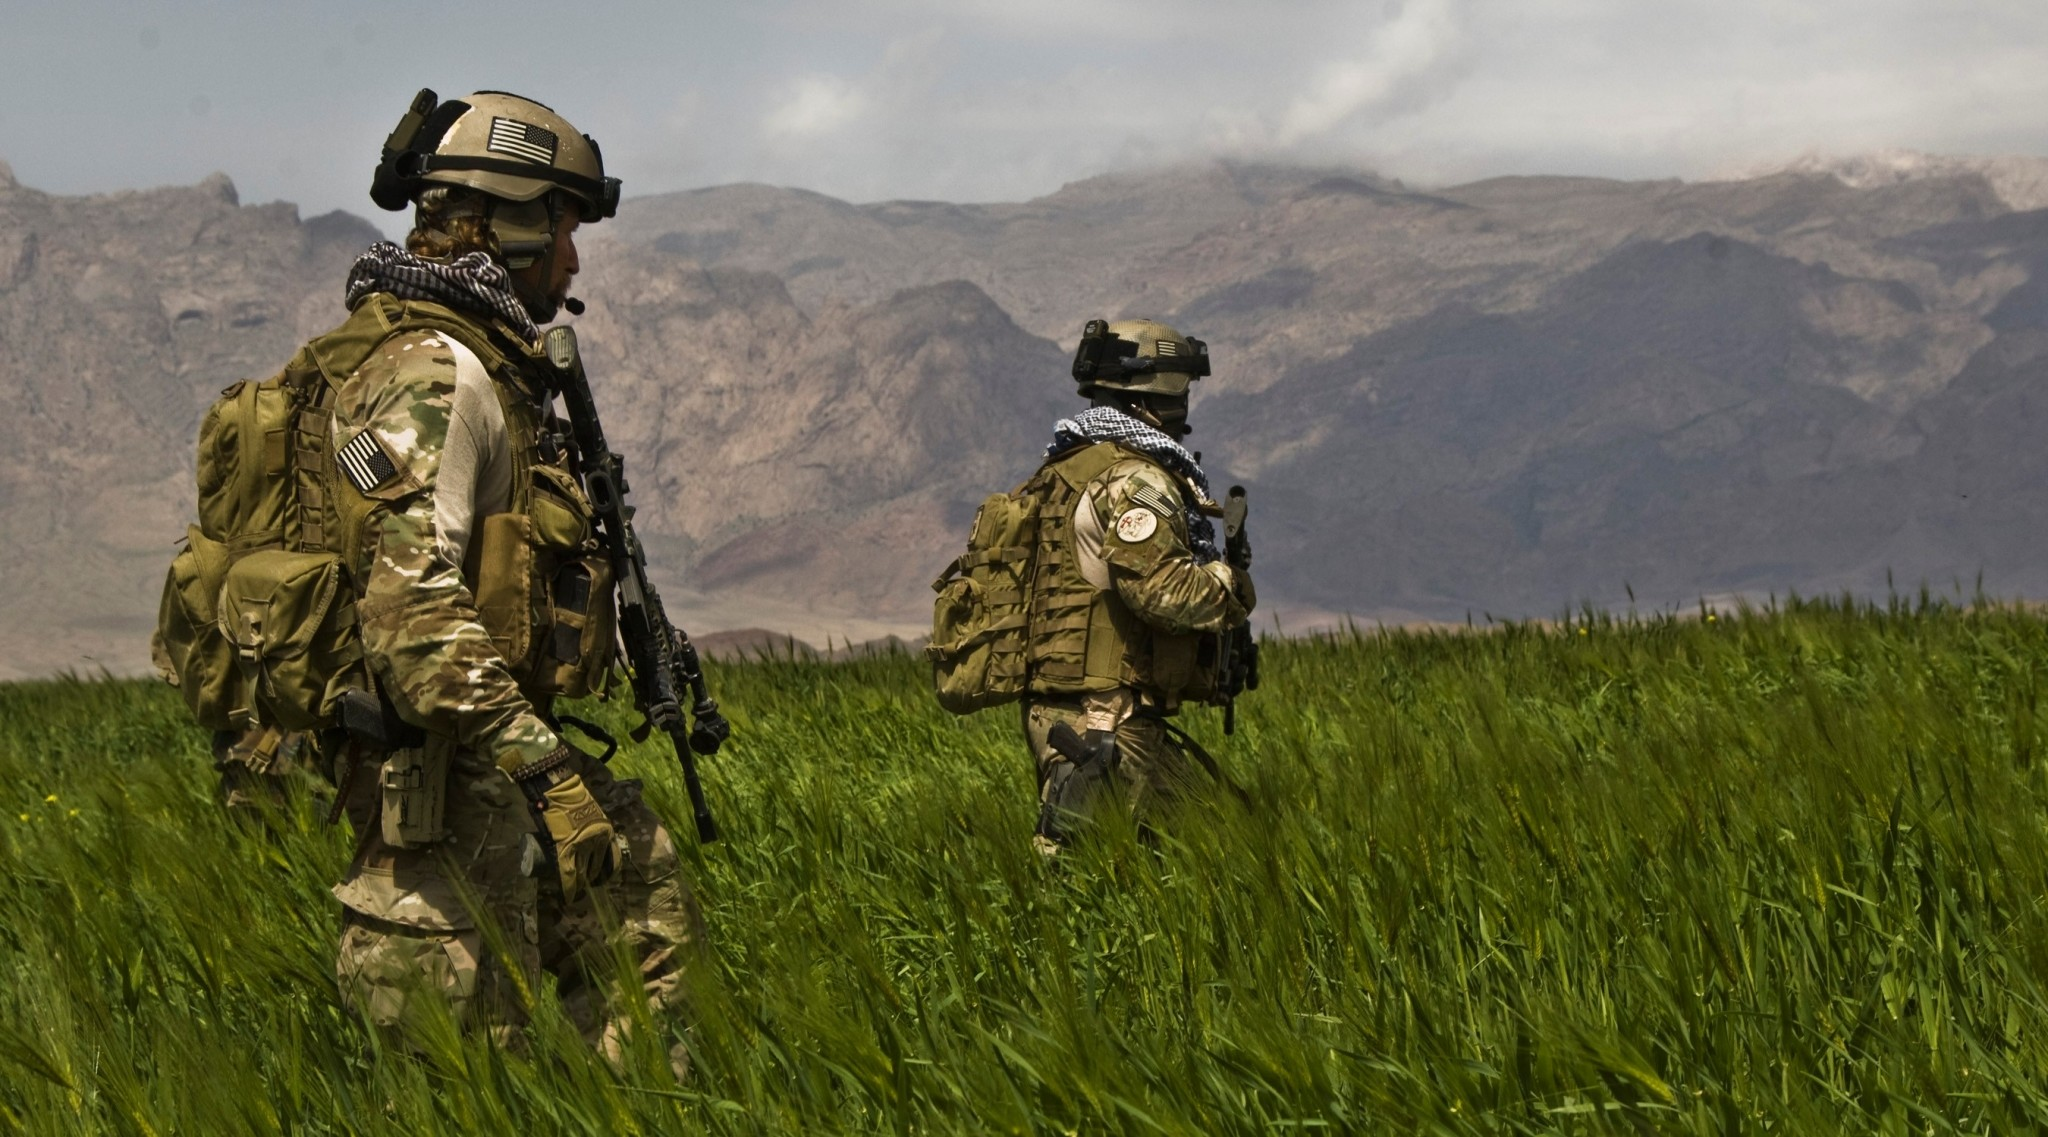 2048x1137 Army Special Forces (Green Berets) members from the Special Forces Group  (Airborne) on foot patrol in Afghanistan.